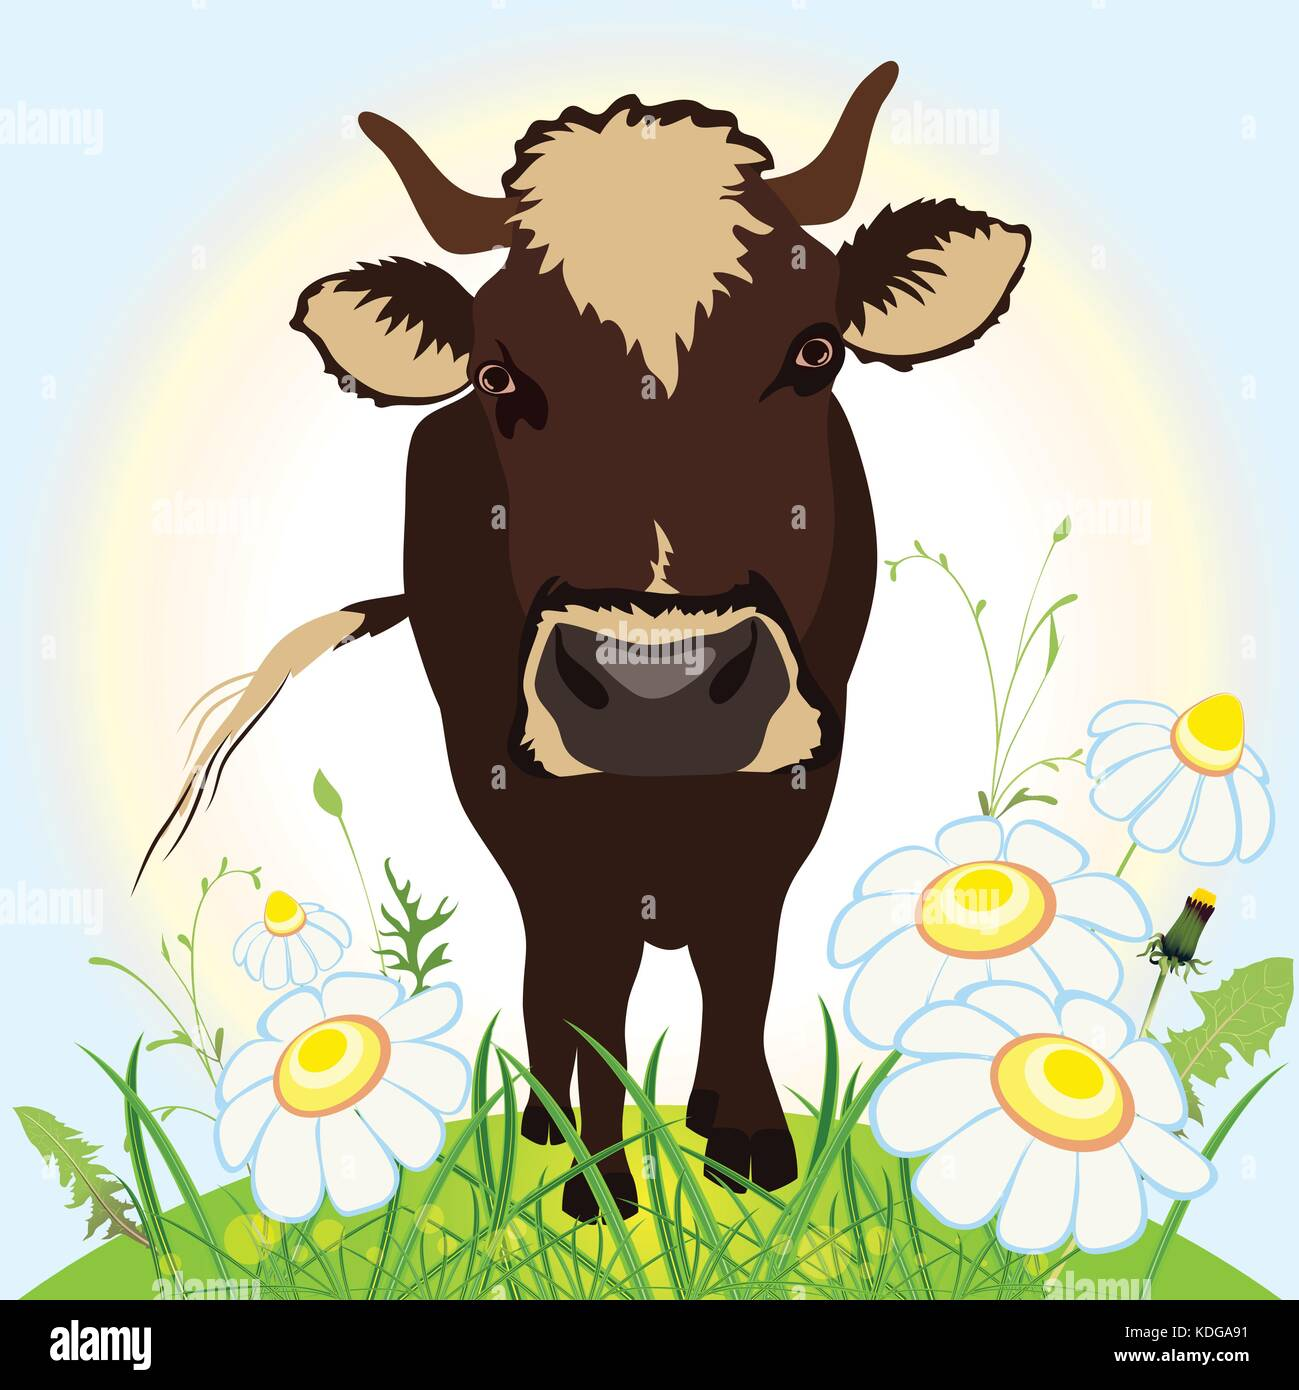 Cow on green field, grass and flowers, vector illustration - Stock Vector